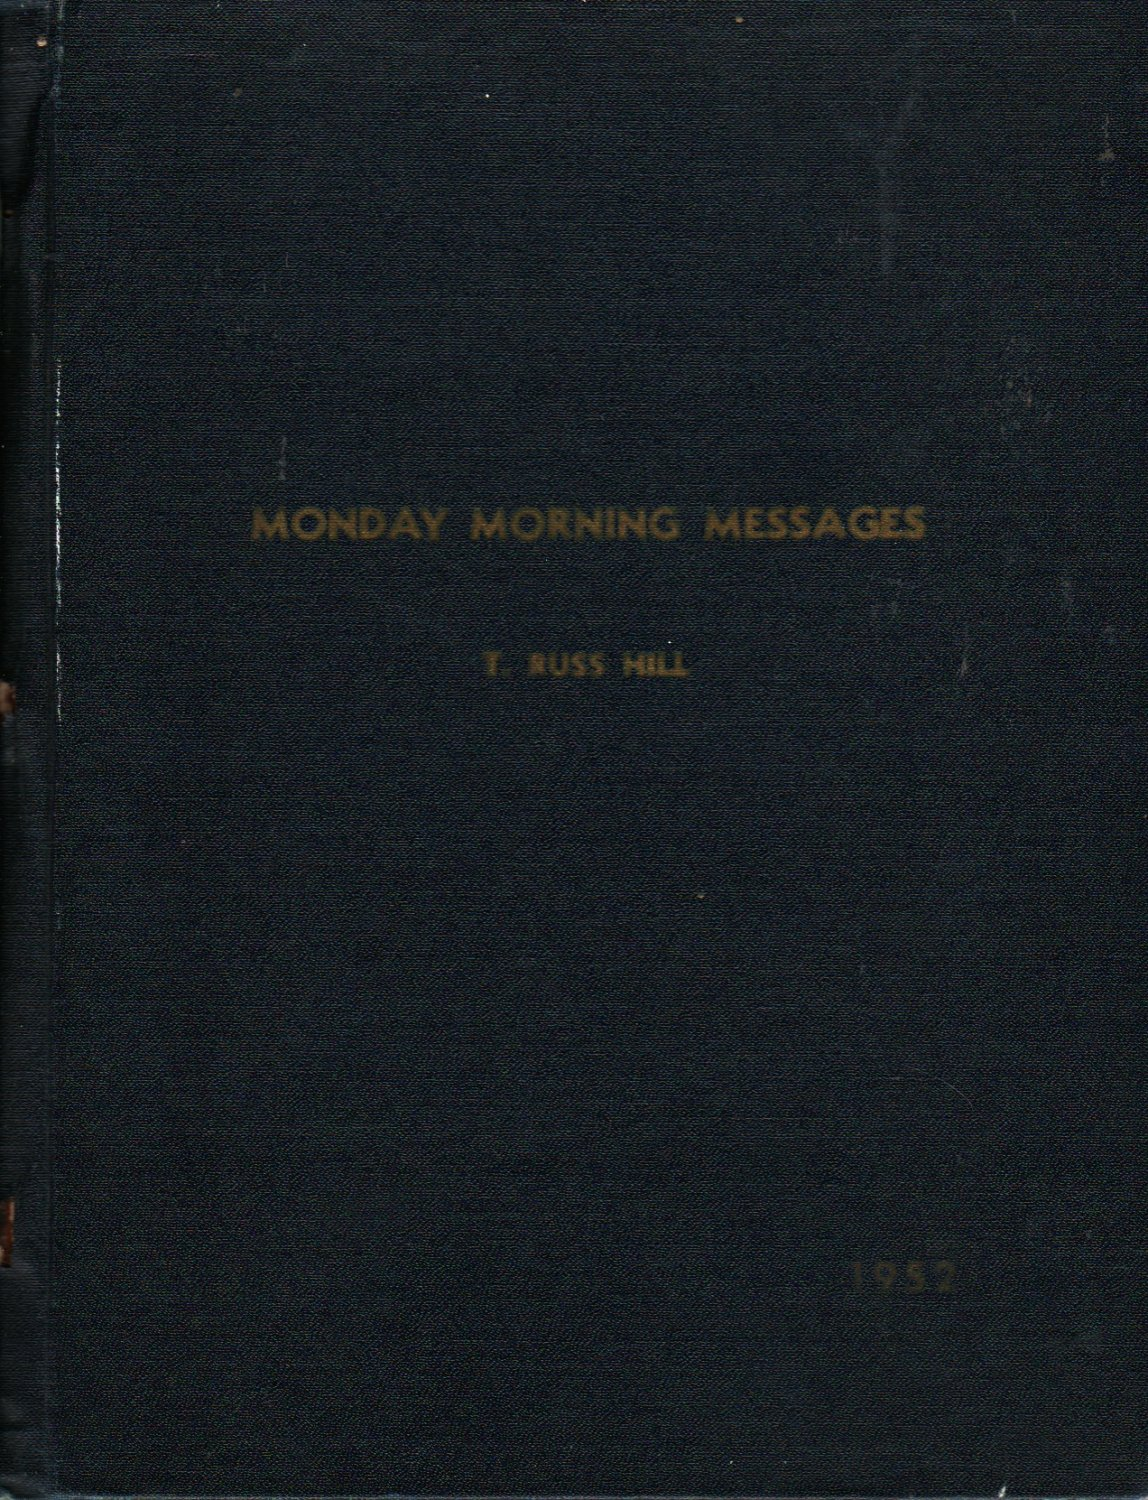 Monday Morning Messages - T. Russ Hill - 1952 - Vintage Inspiration Book